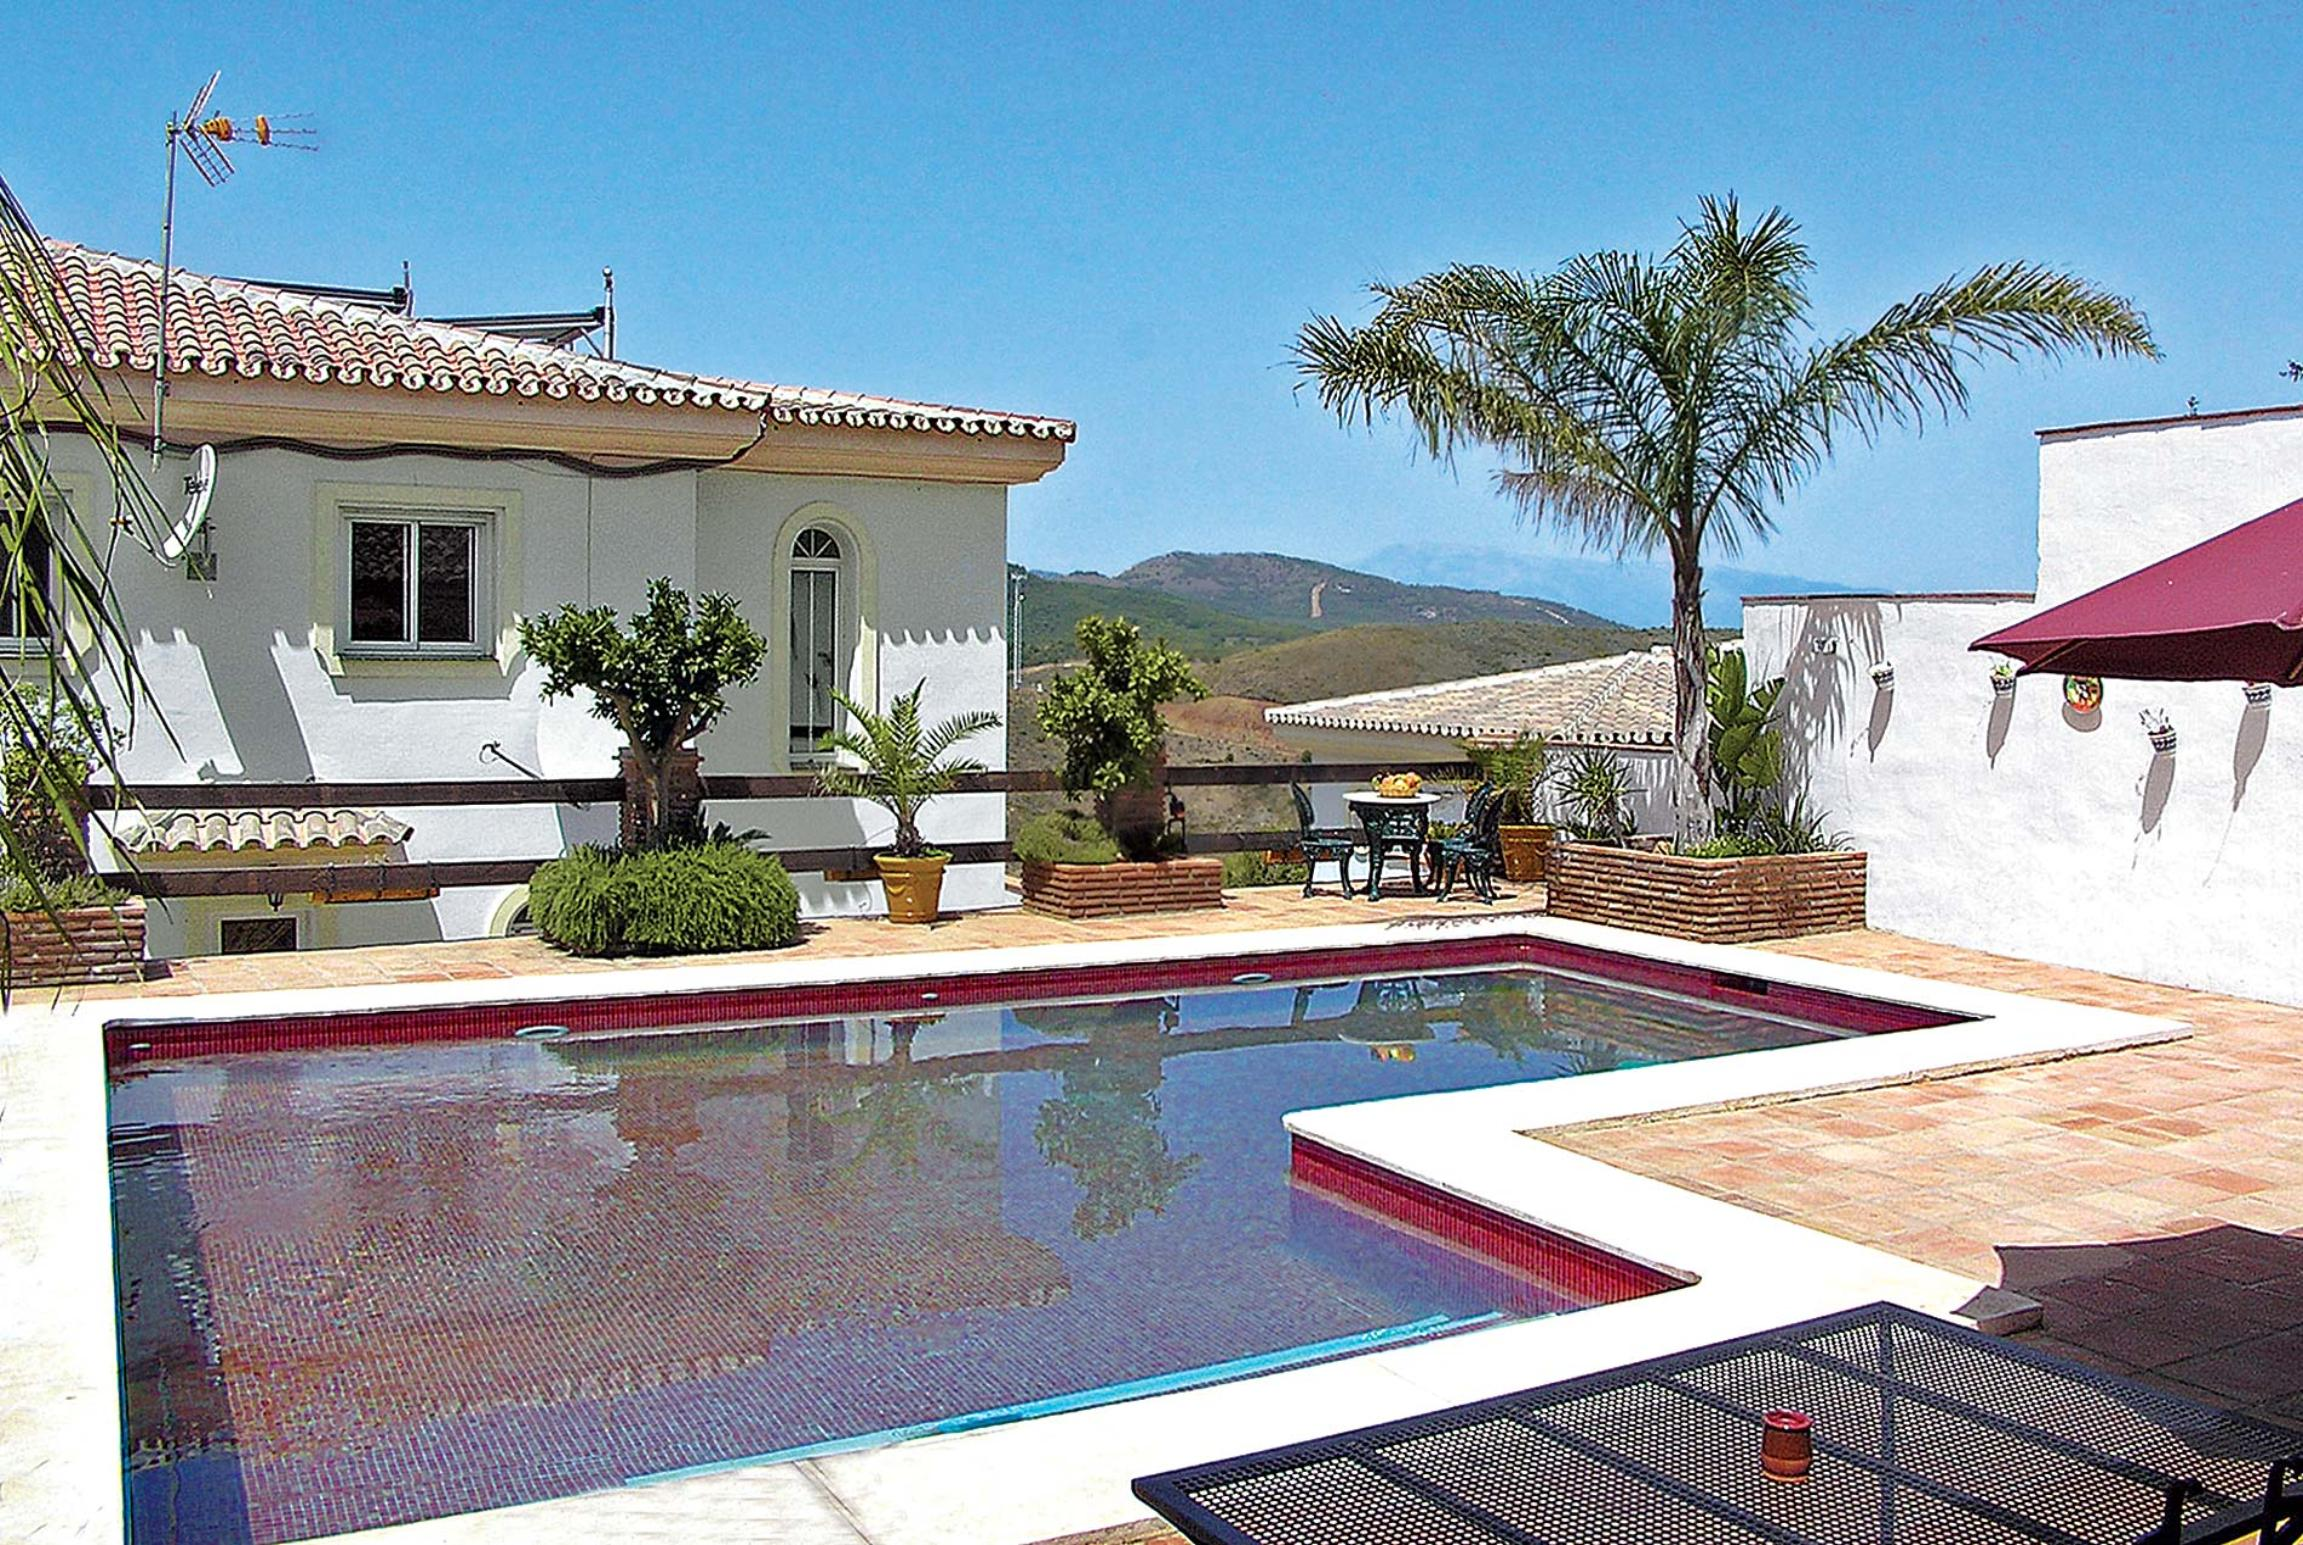 Read more about Andreamos villa